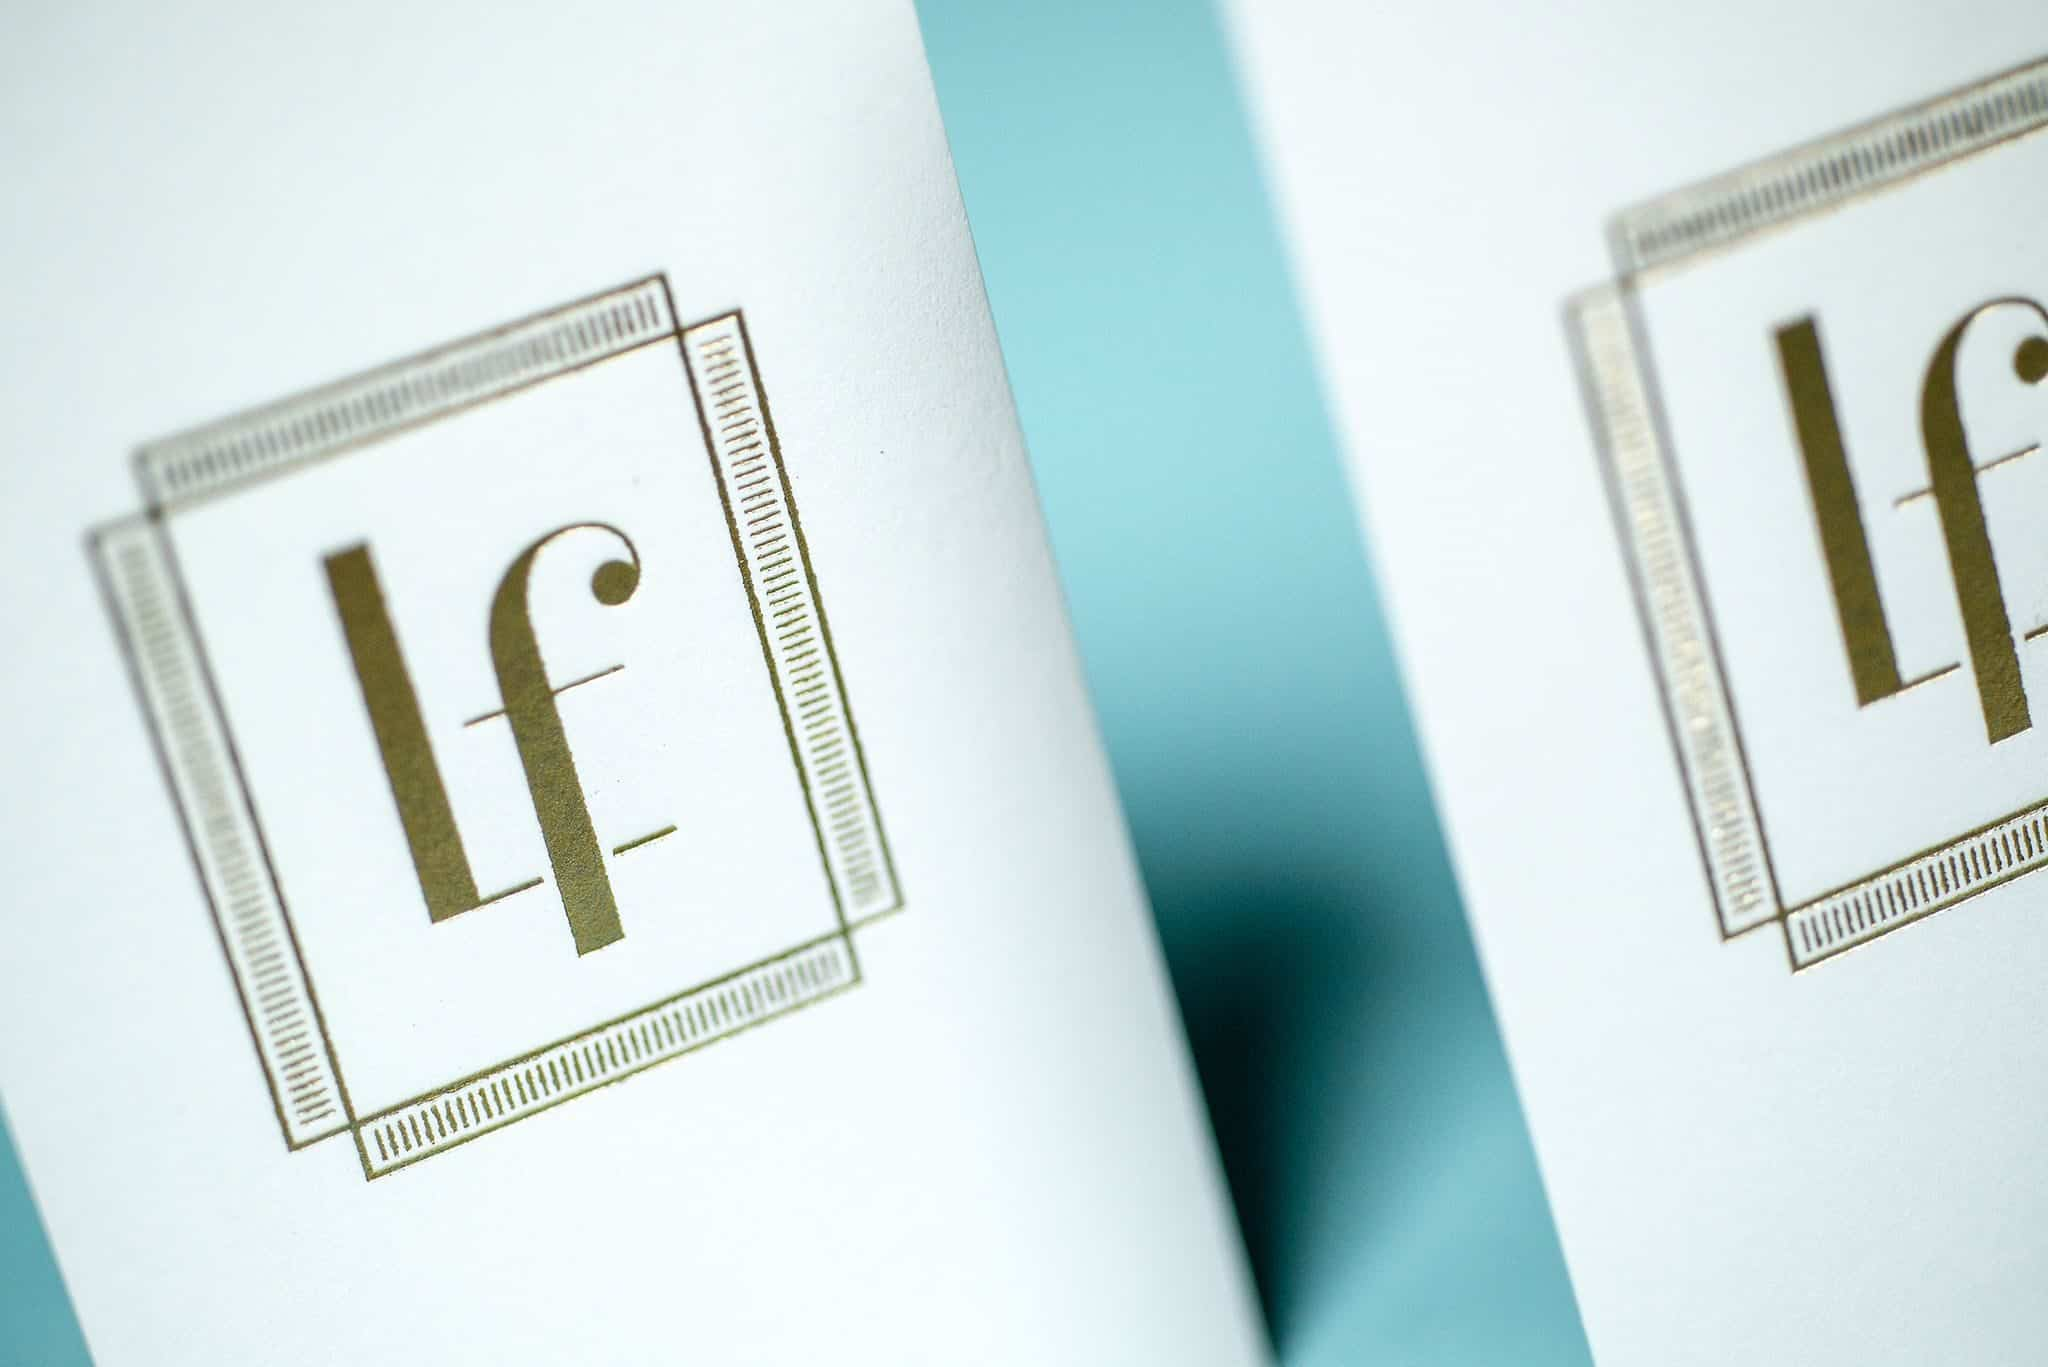 Foil stamped product tags for Lettrefina Linens & Monogrammes | Designed by Field of Study: A branding and graphic design consultancy | Houston TX | Jennifer Blanco & John Earles